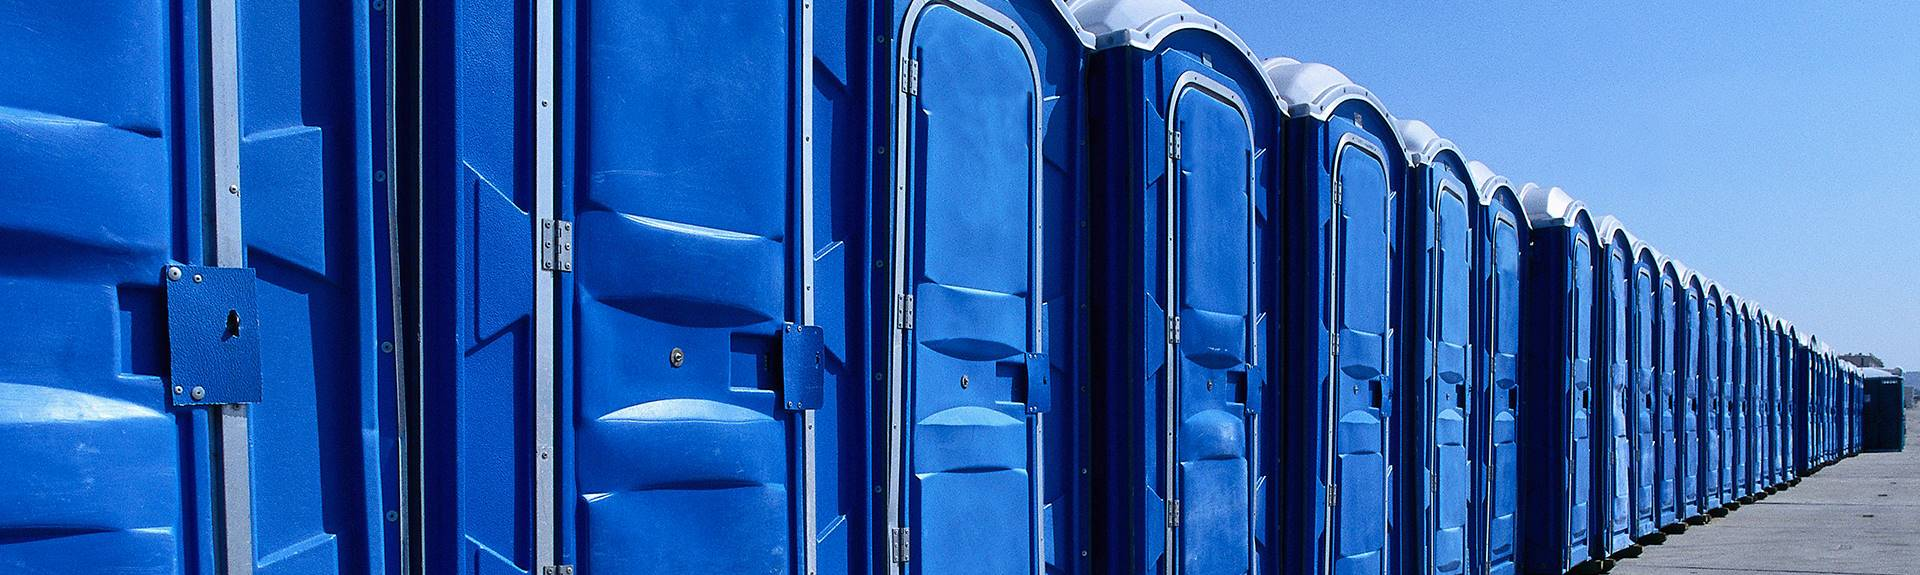 portable restroom: portapotties